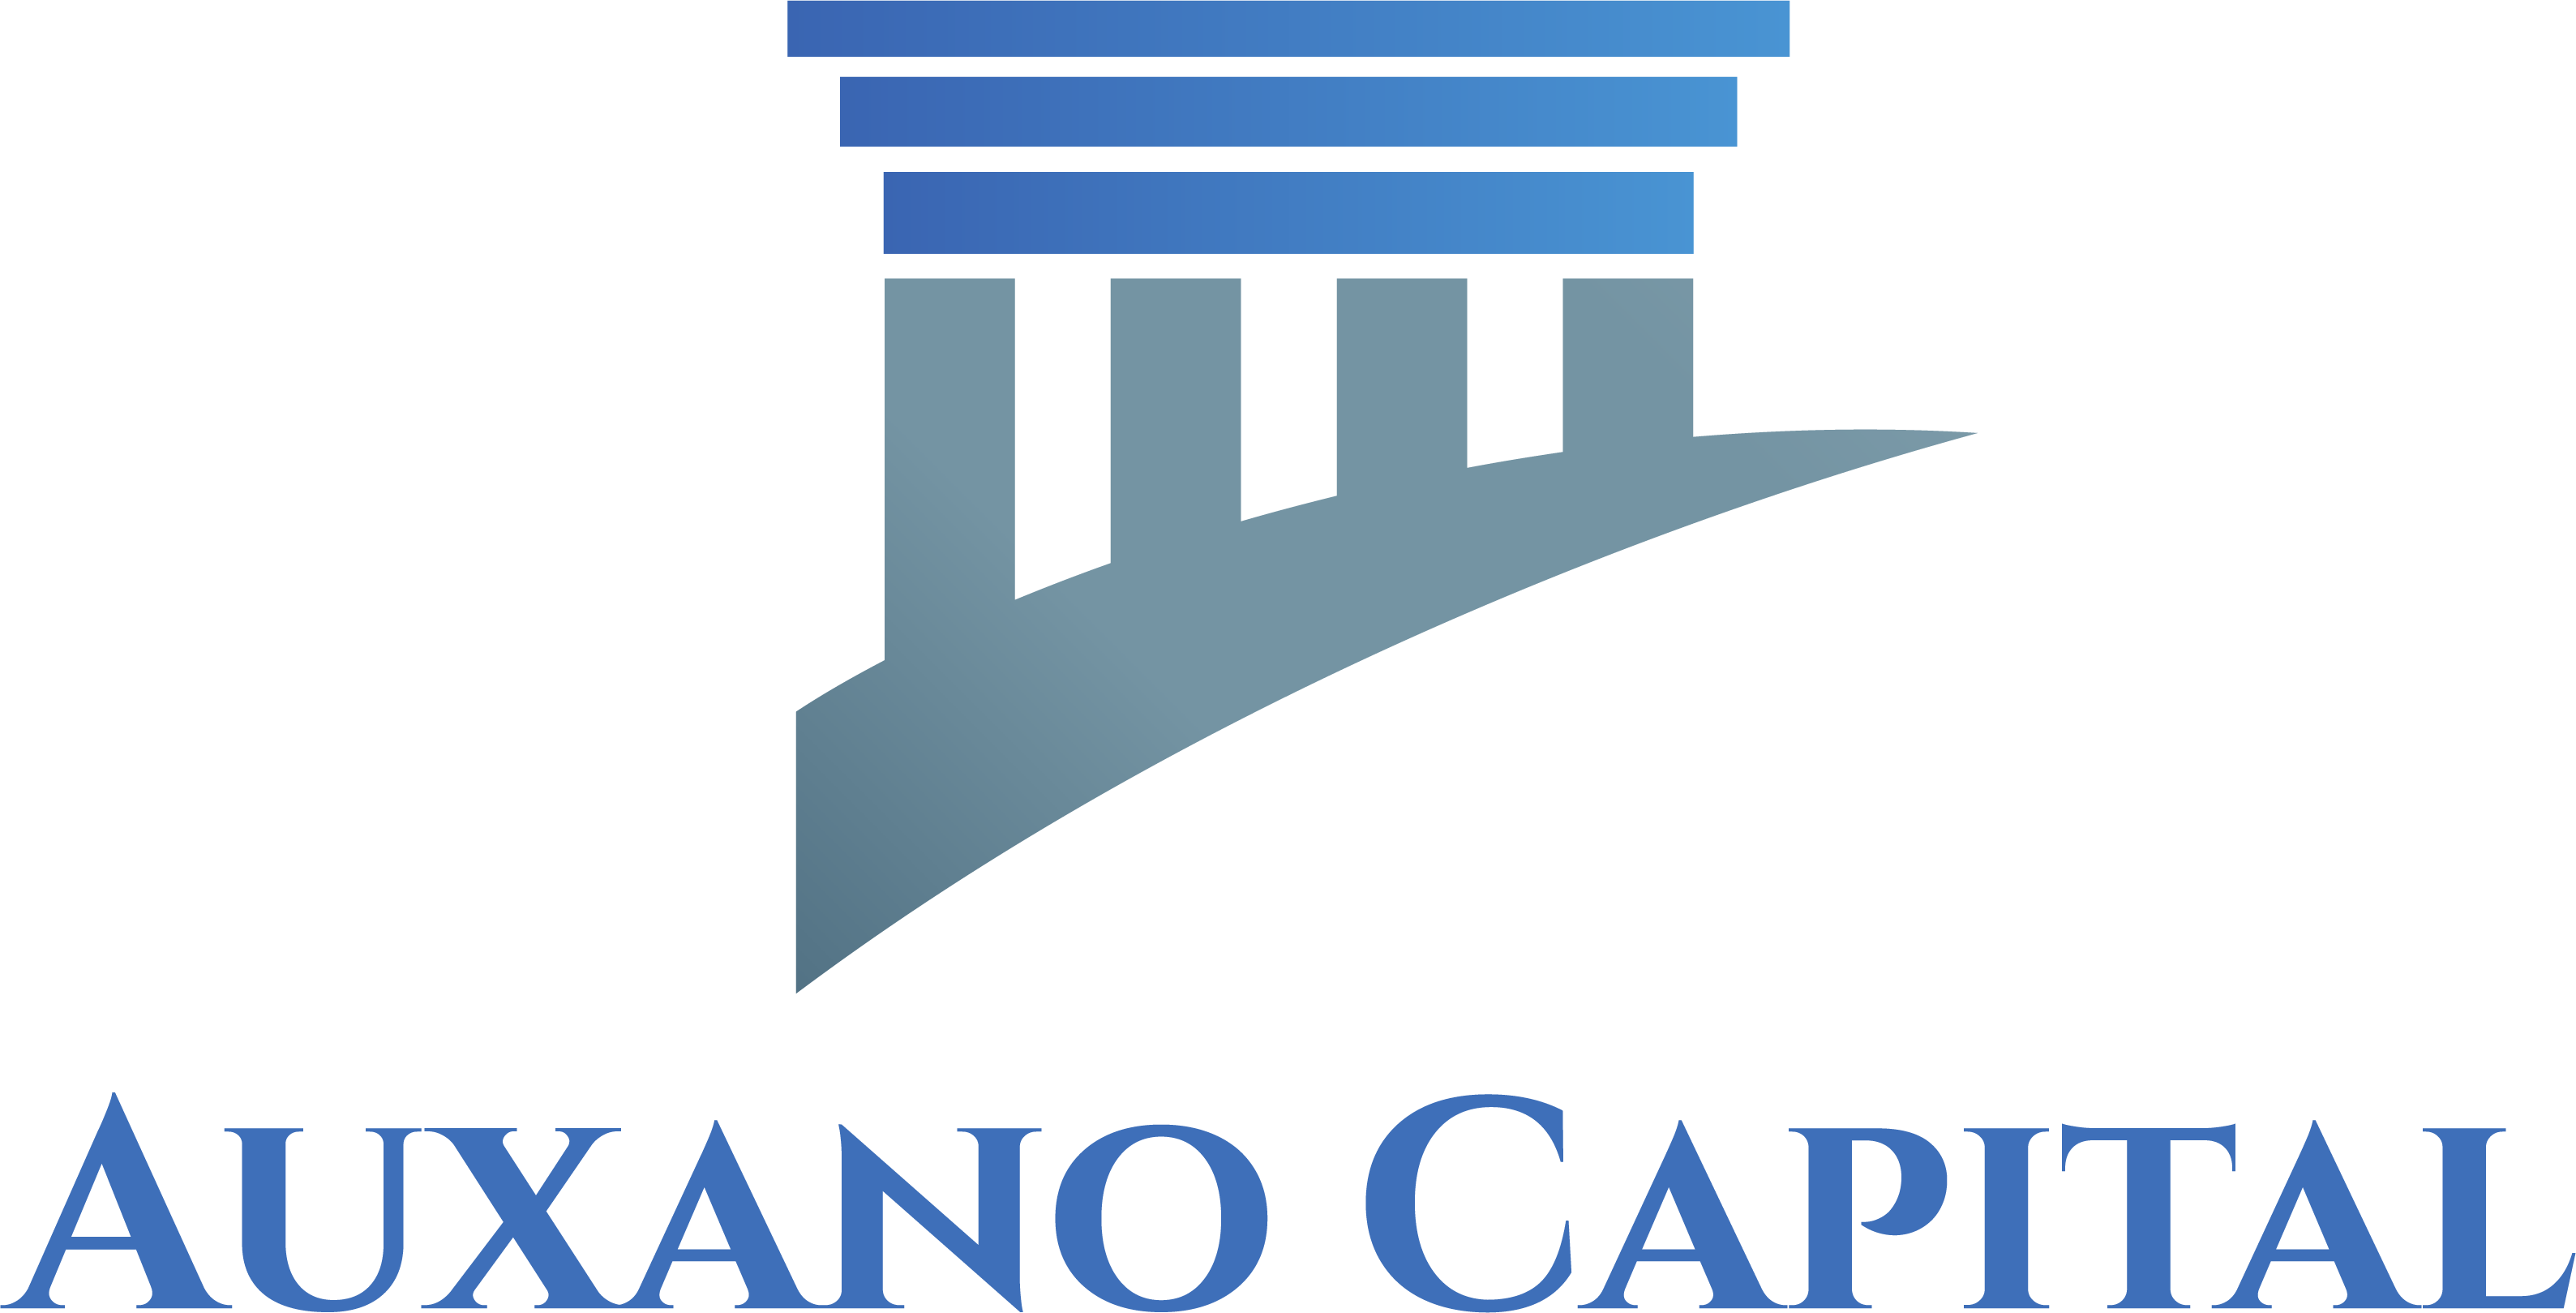 https://auxano-capital.com/wp-content/uploads/2020/12/NewLogo1.png